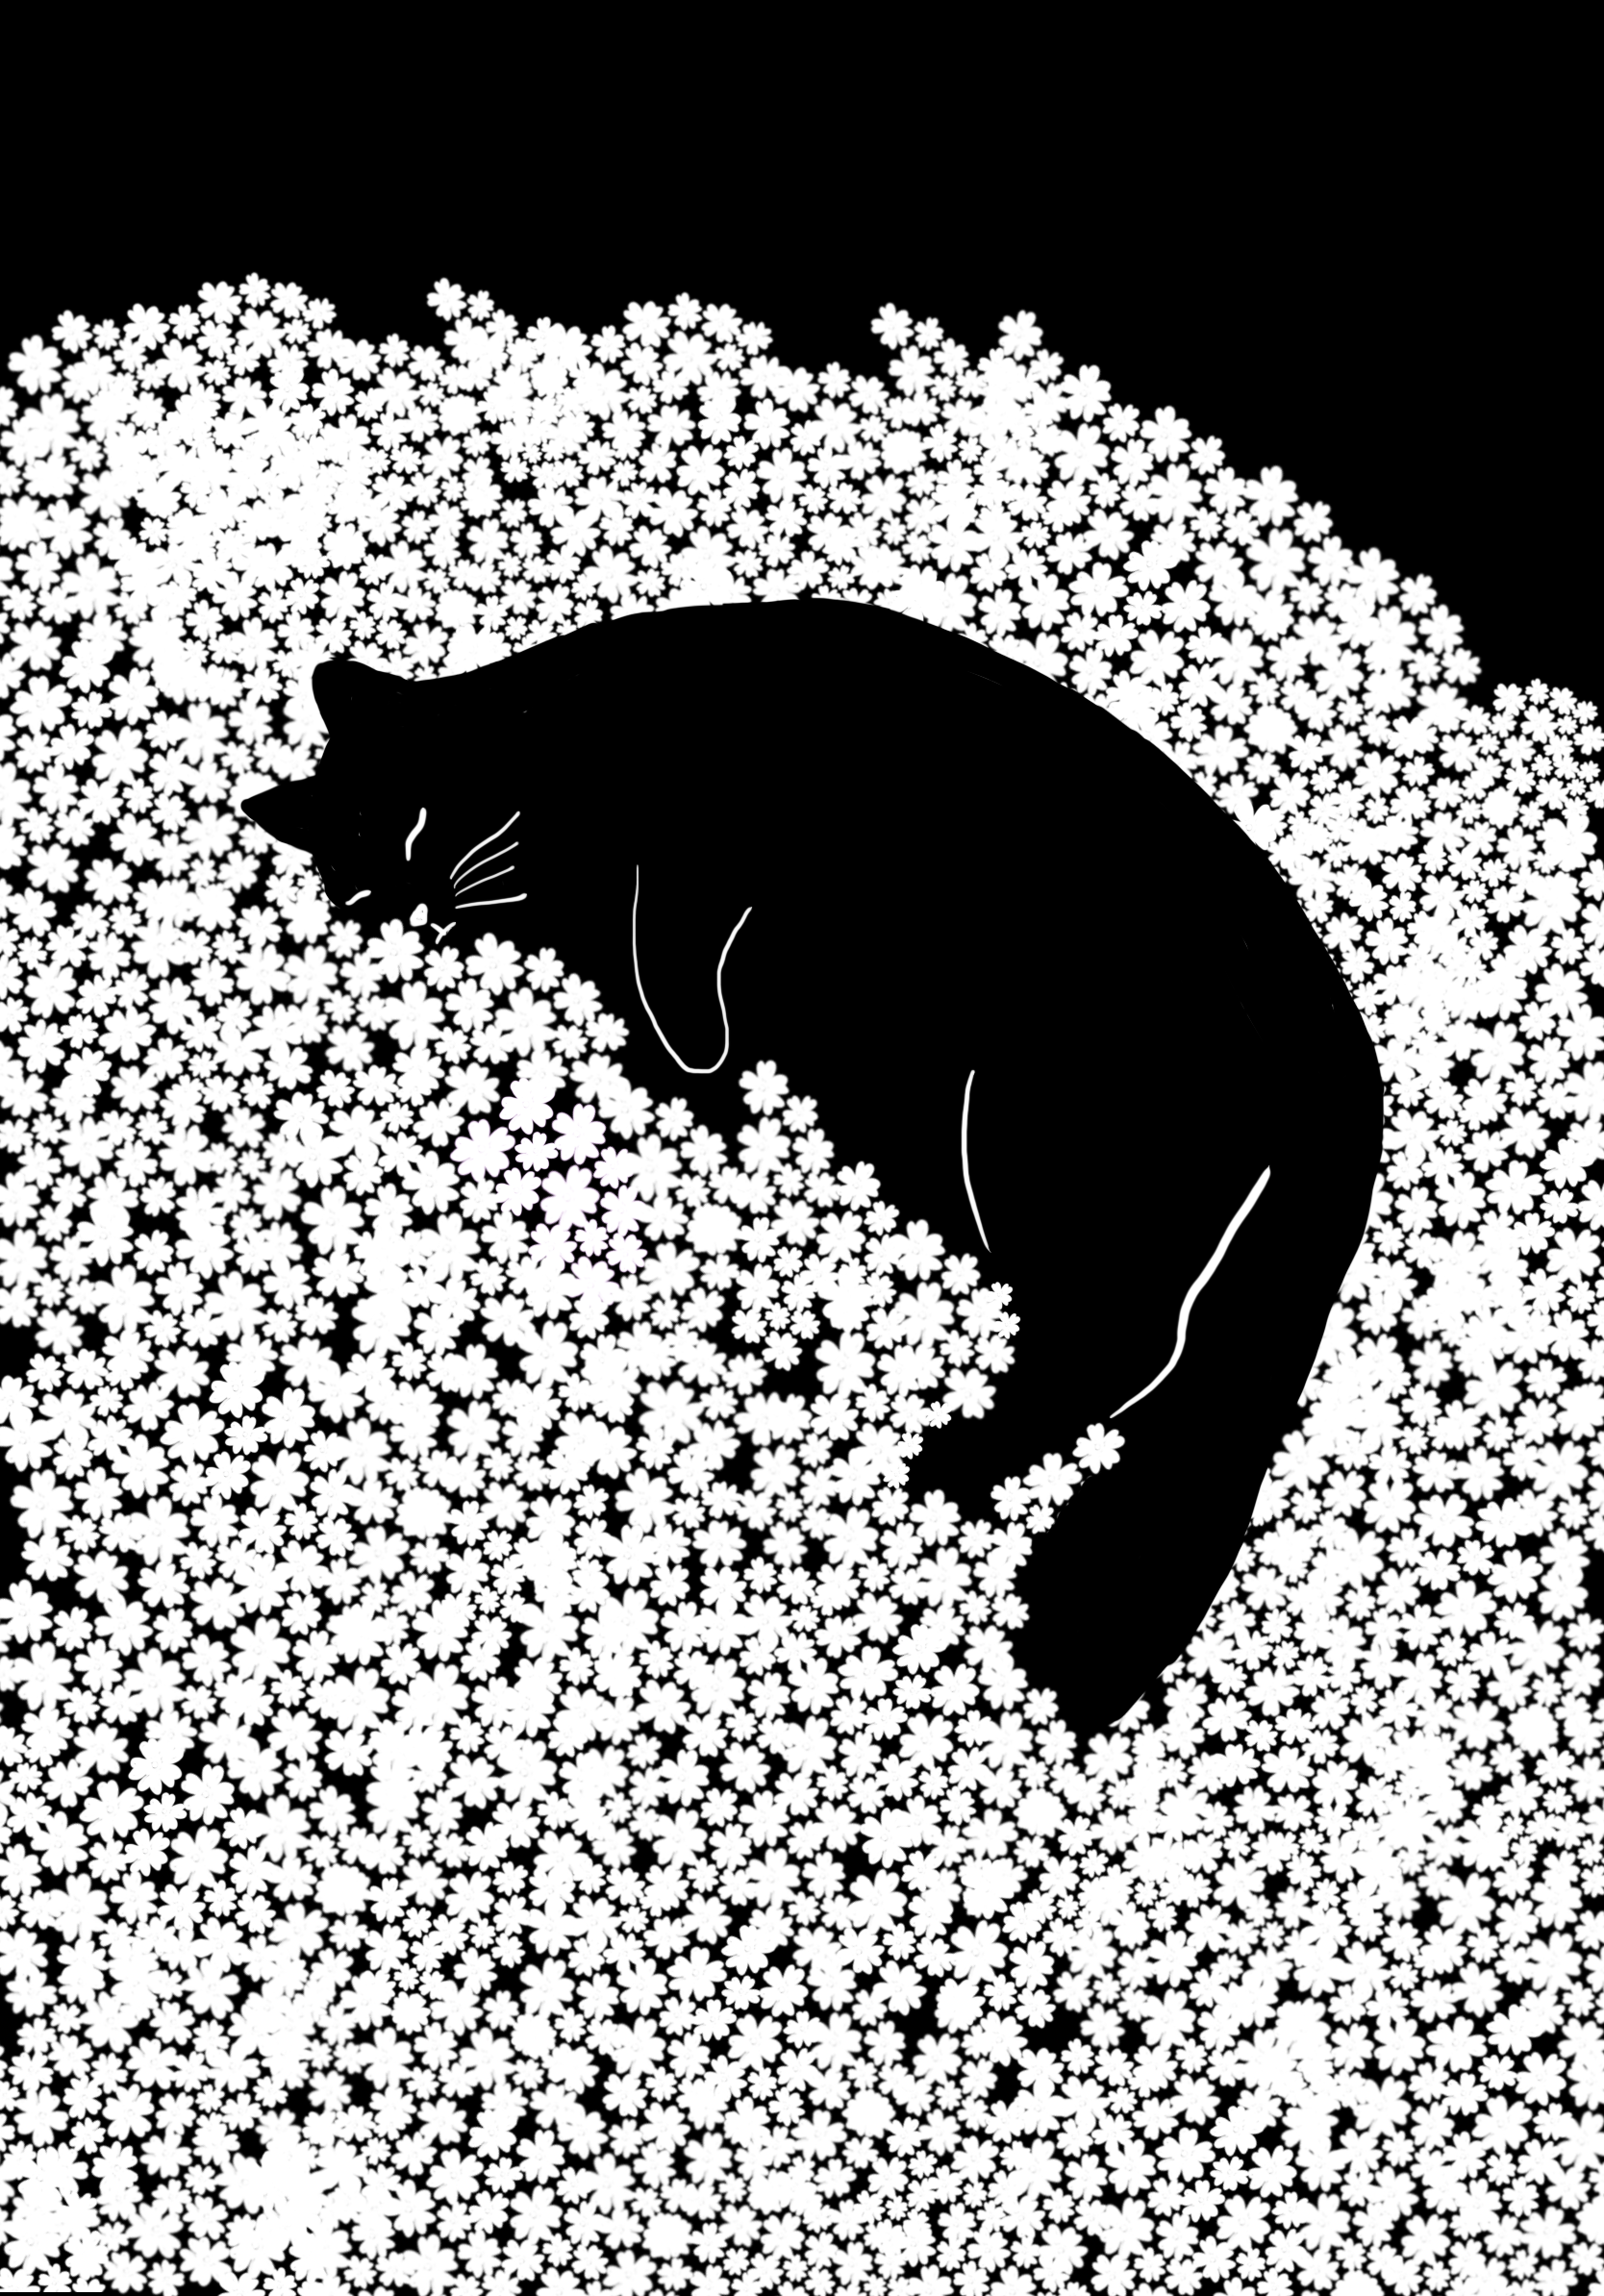 A black and white illustration of a cat sleeping on a bed of flowers.